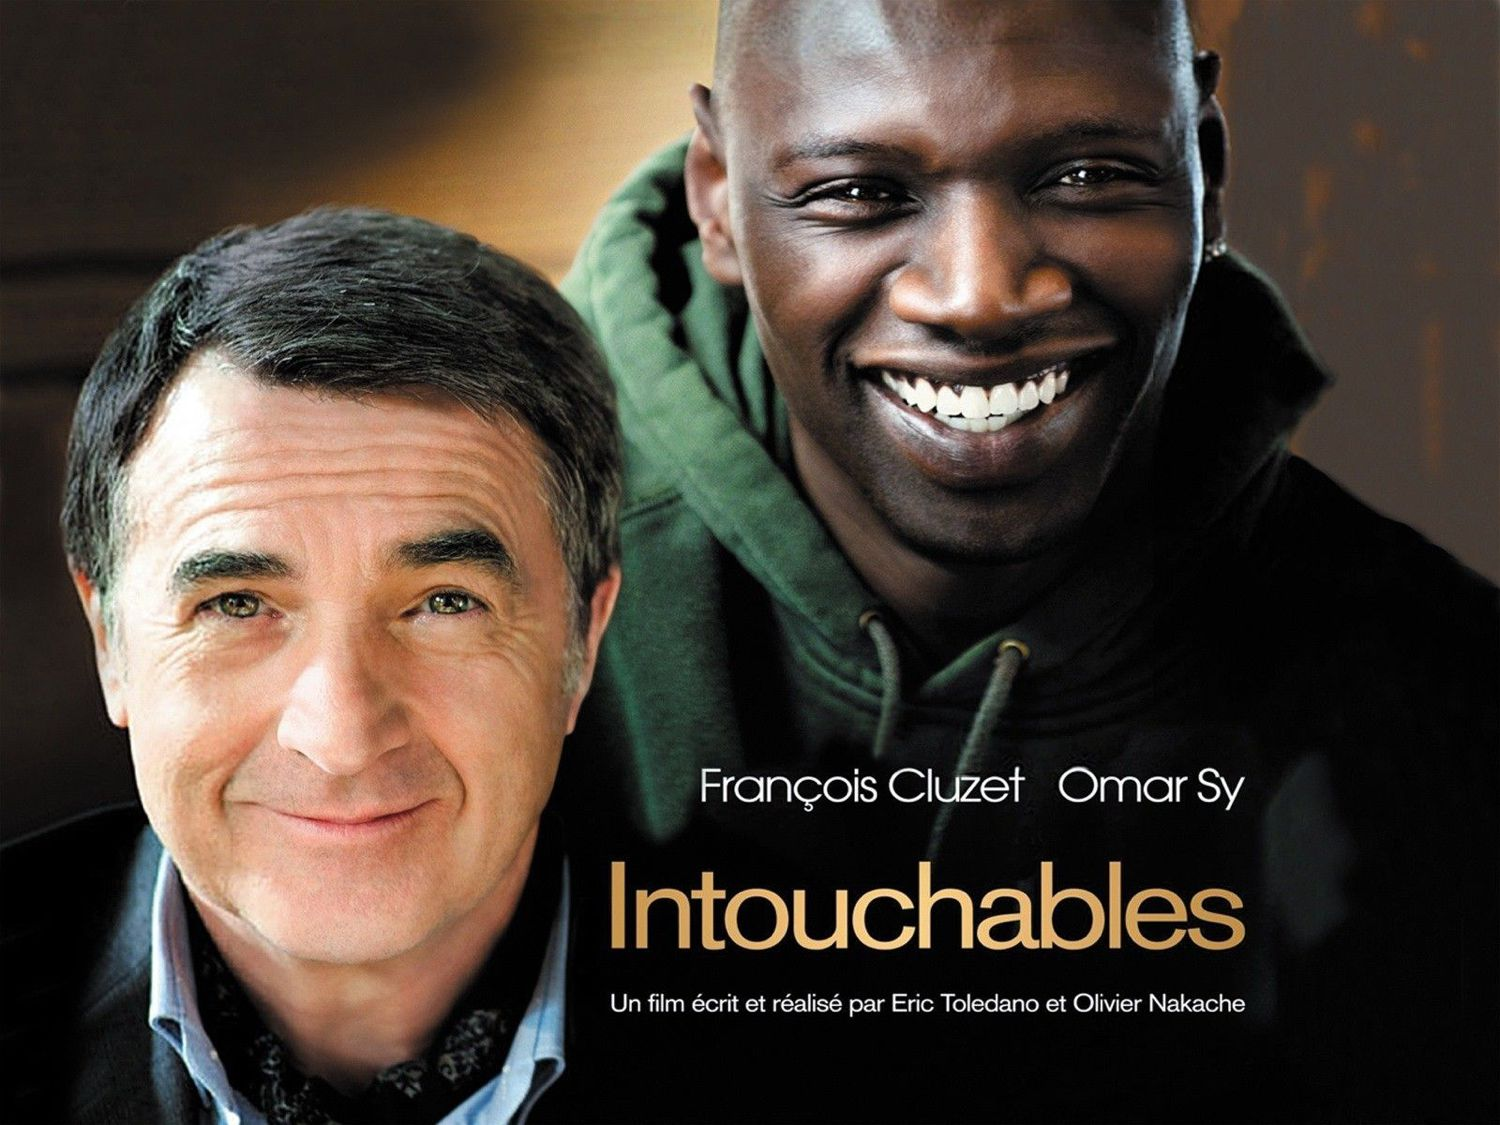 5 Amazing French Films You Have To Watch! (2)